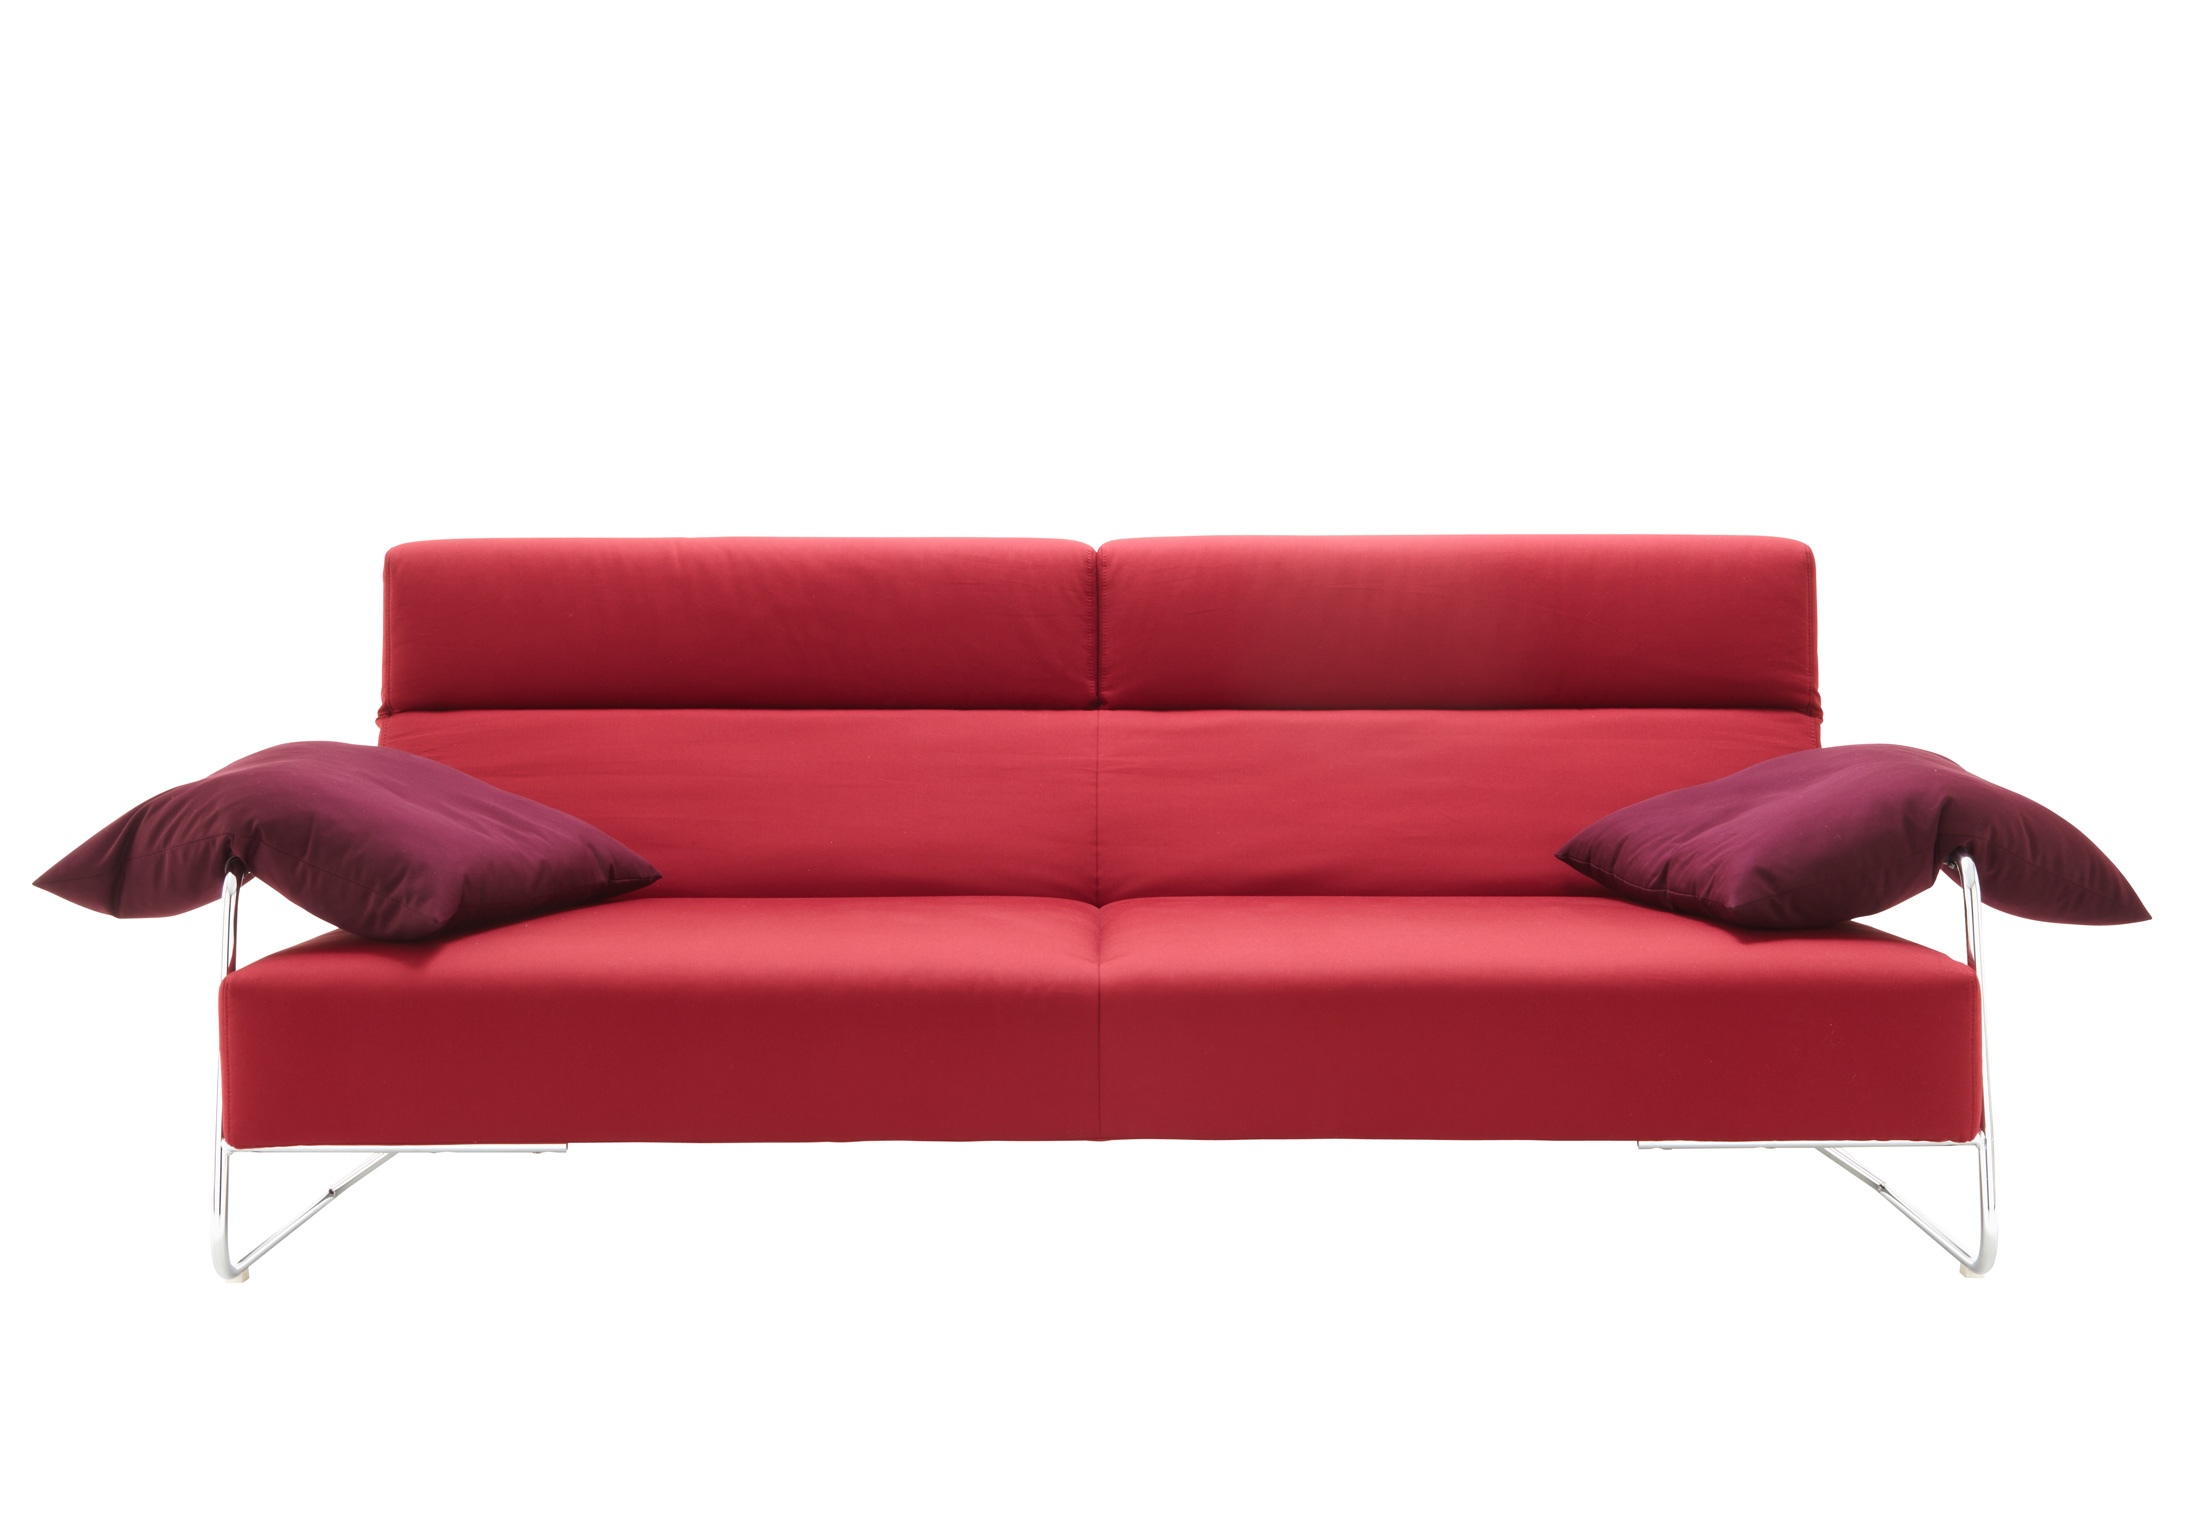 Sofa cama officio mondo for Estructura sofa cama